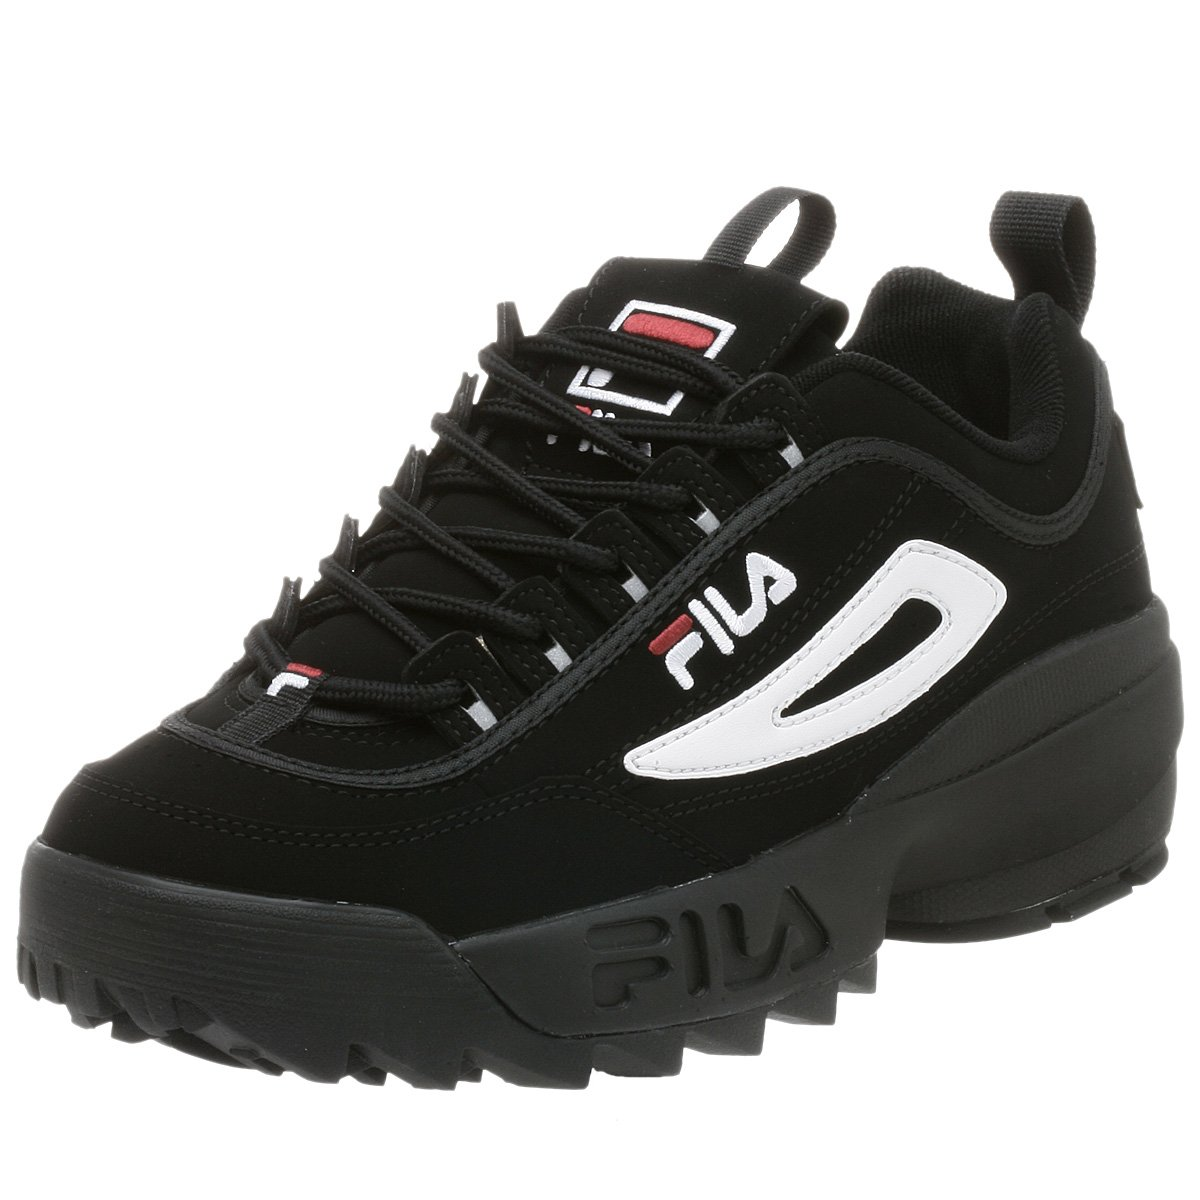 Black White Vin Red Fila Men's Disruptor II Sneaker